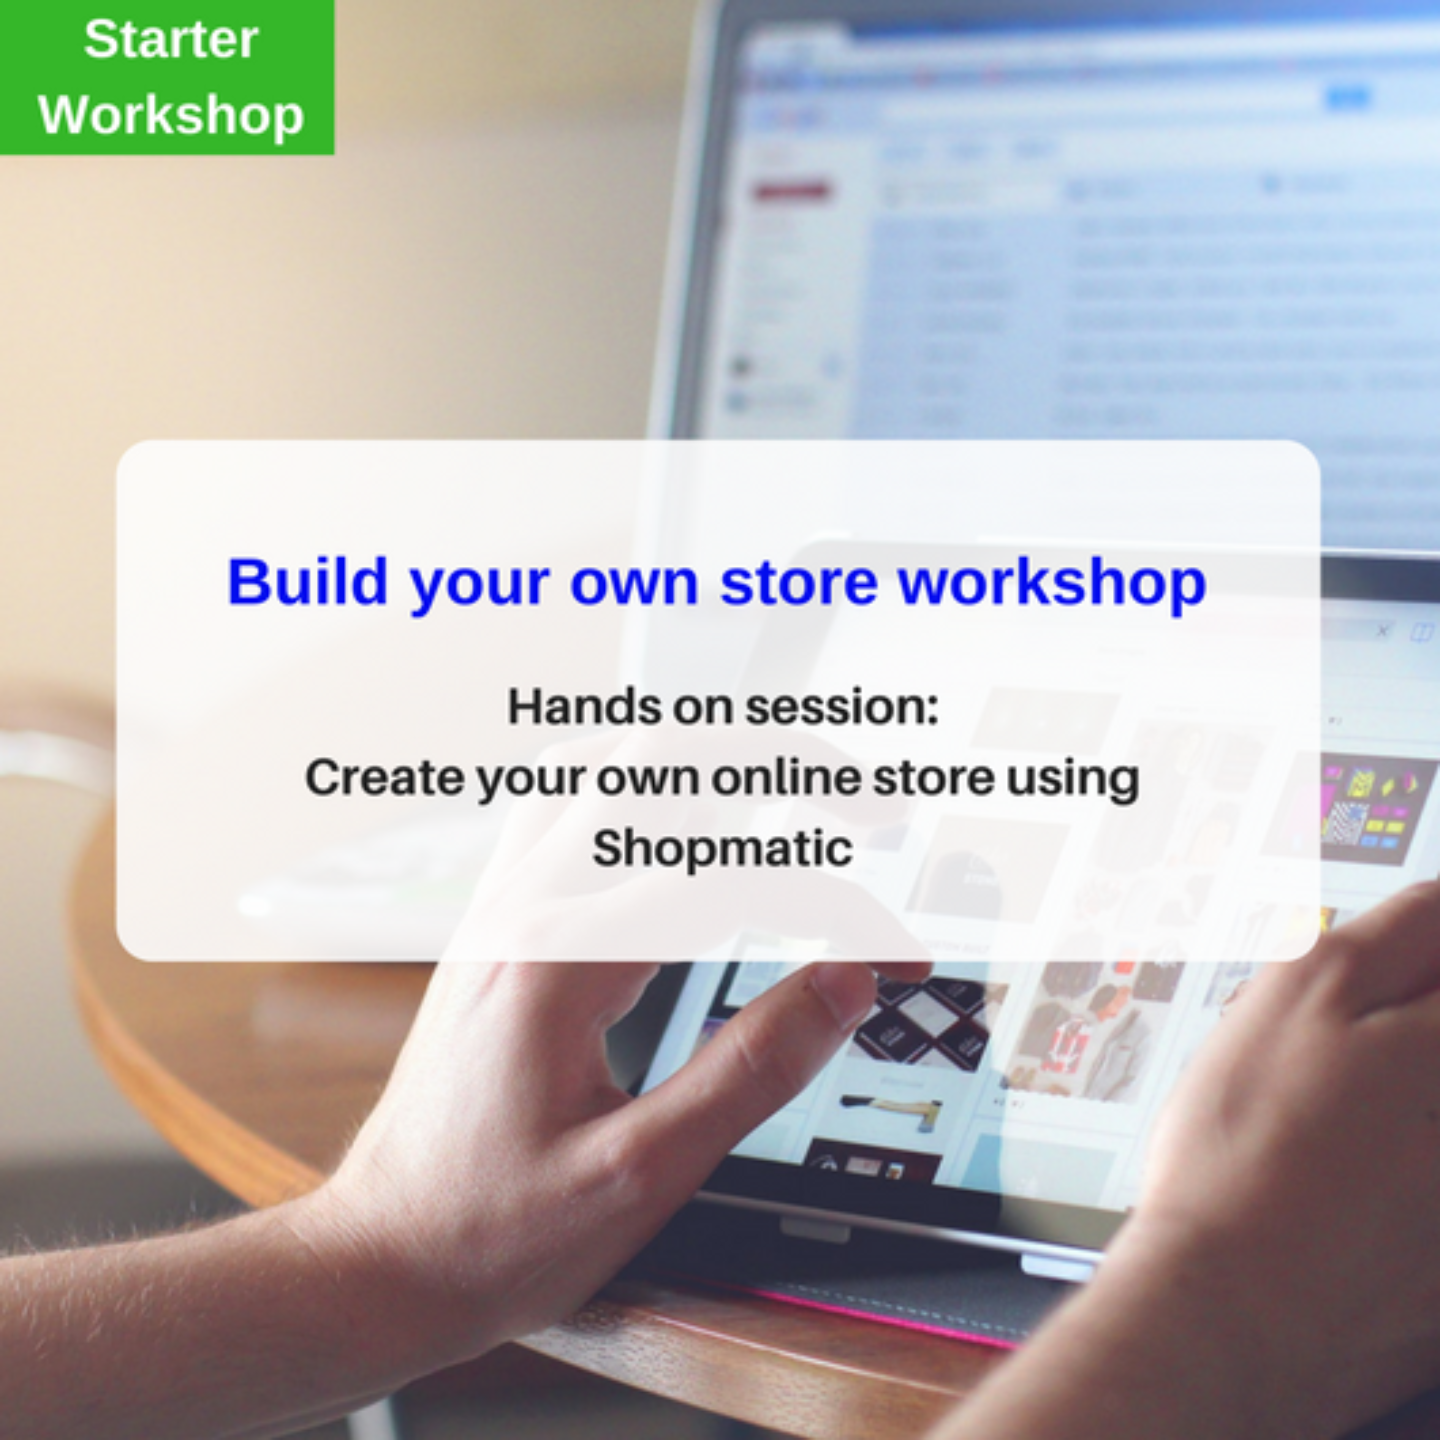 Build a webstore workshop